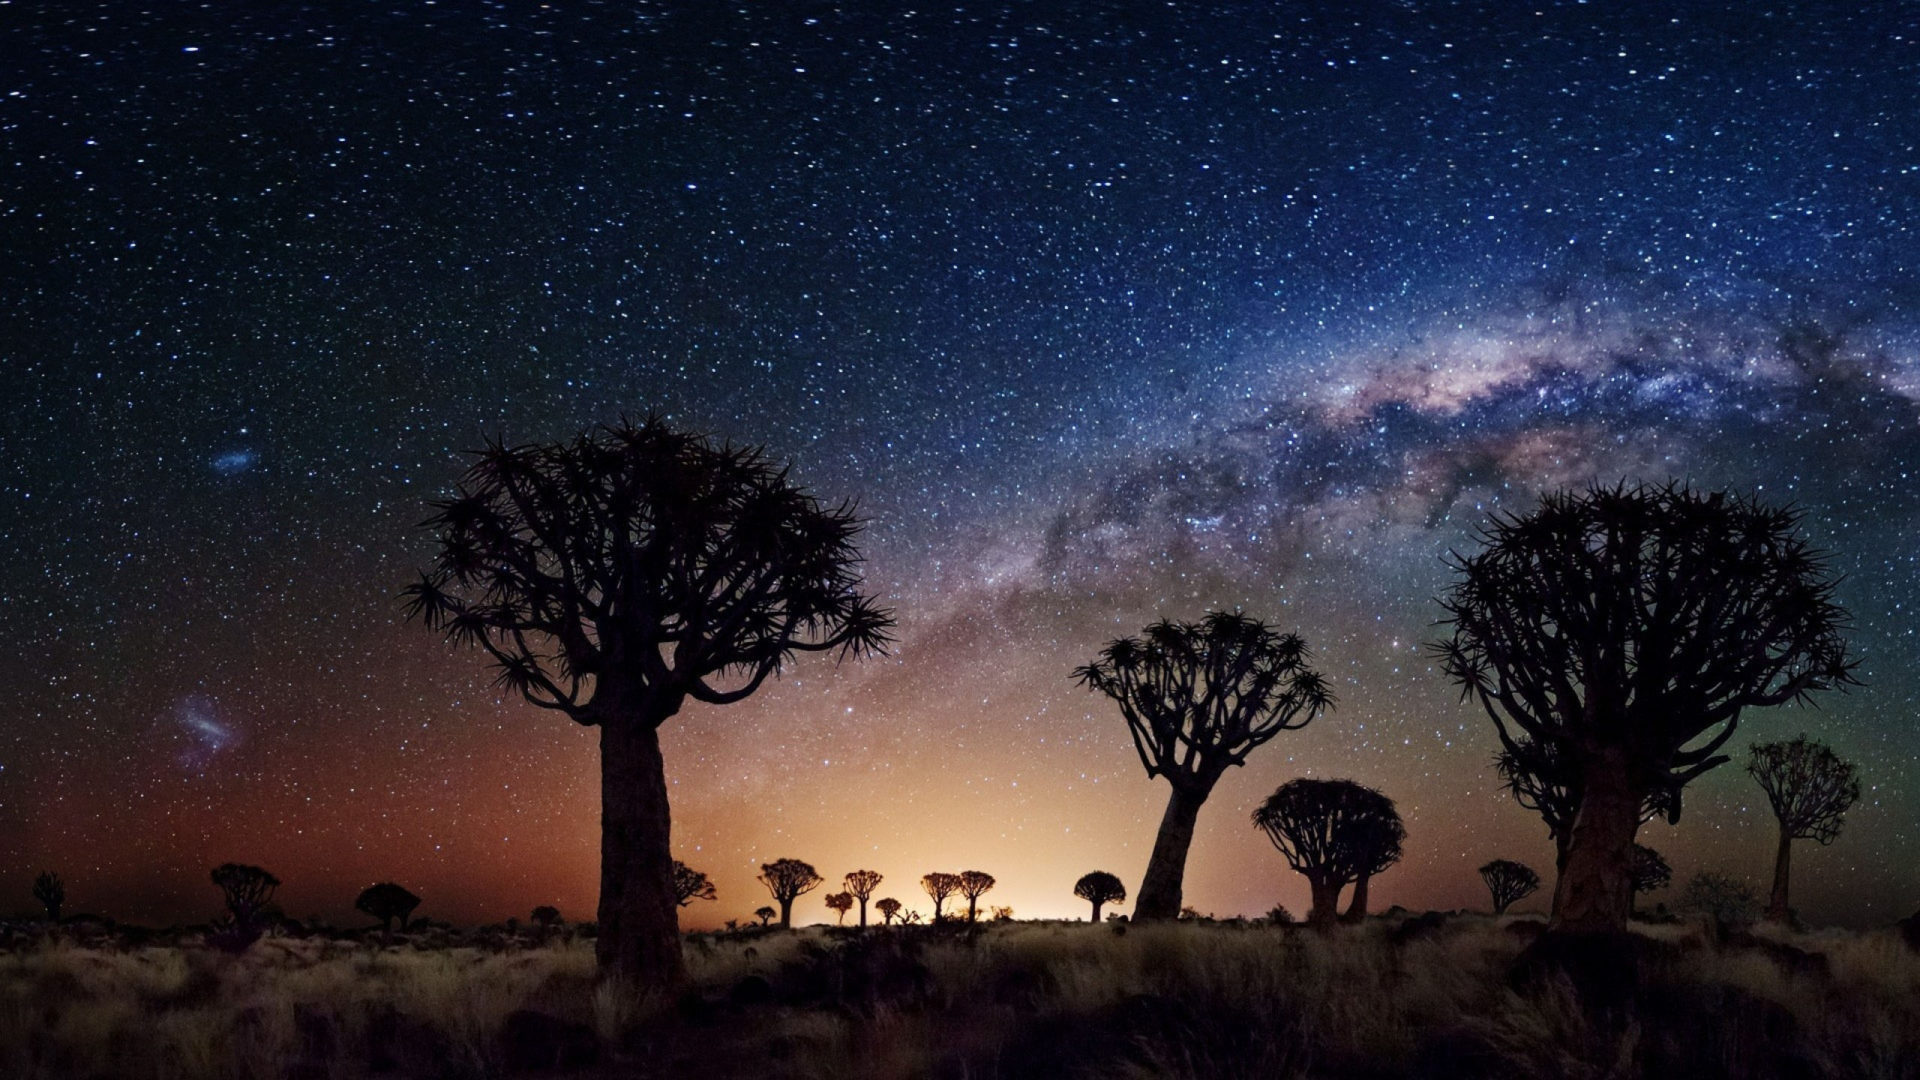 Free Wallpaper Fall Flowers Night Landscape The Milky Way Trees Desert Area In Night